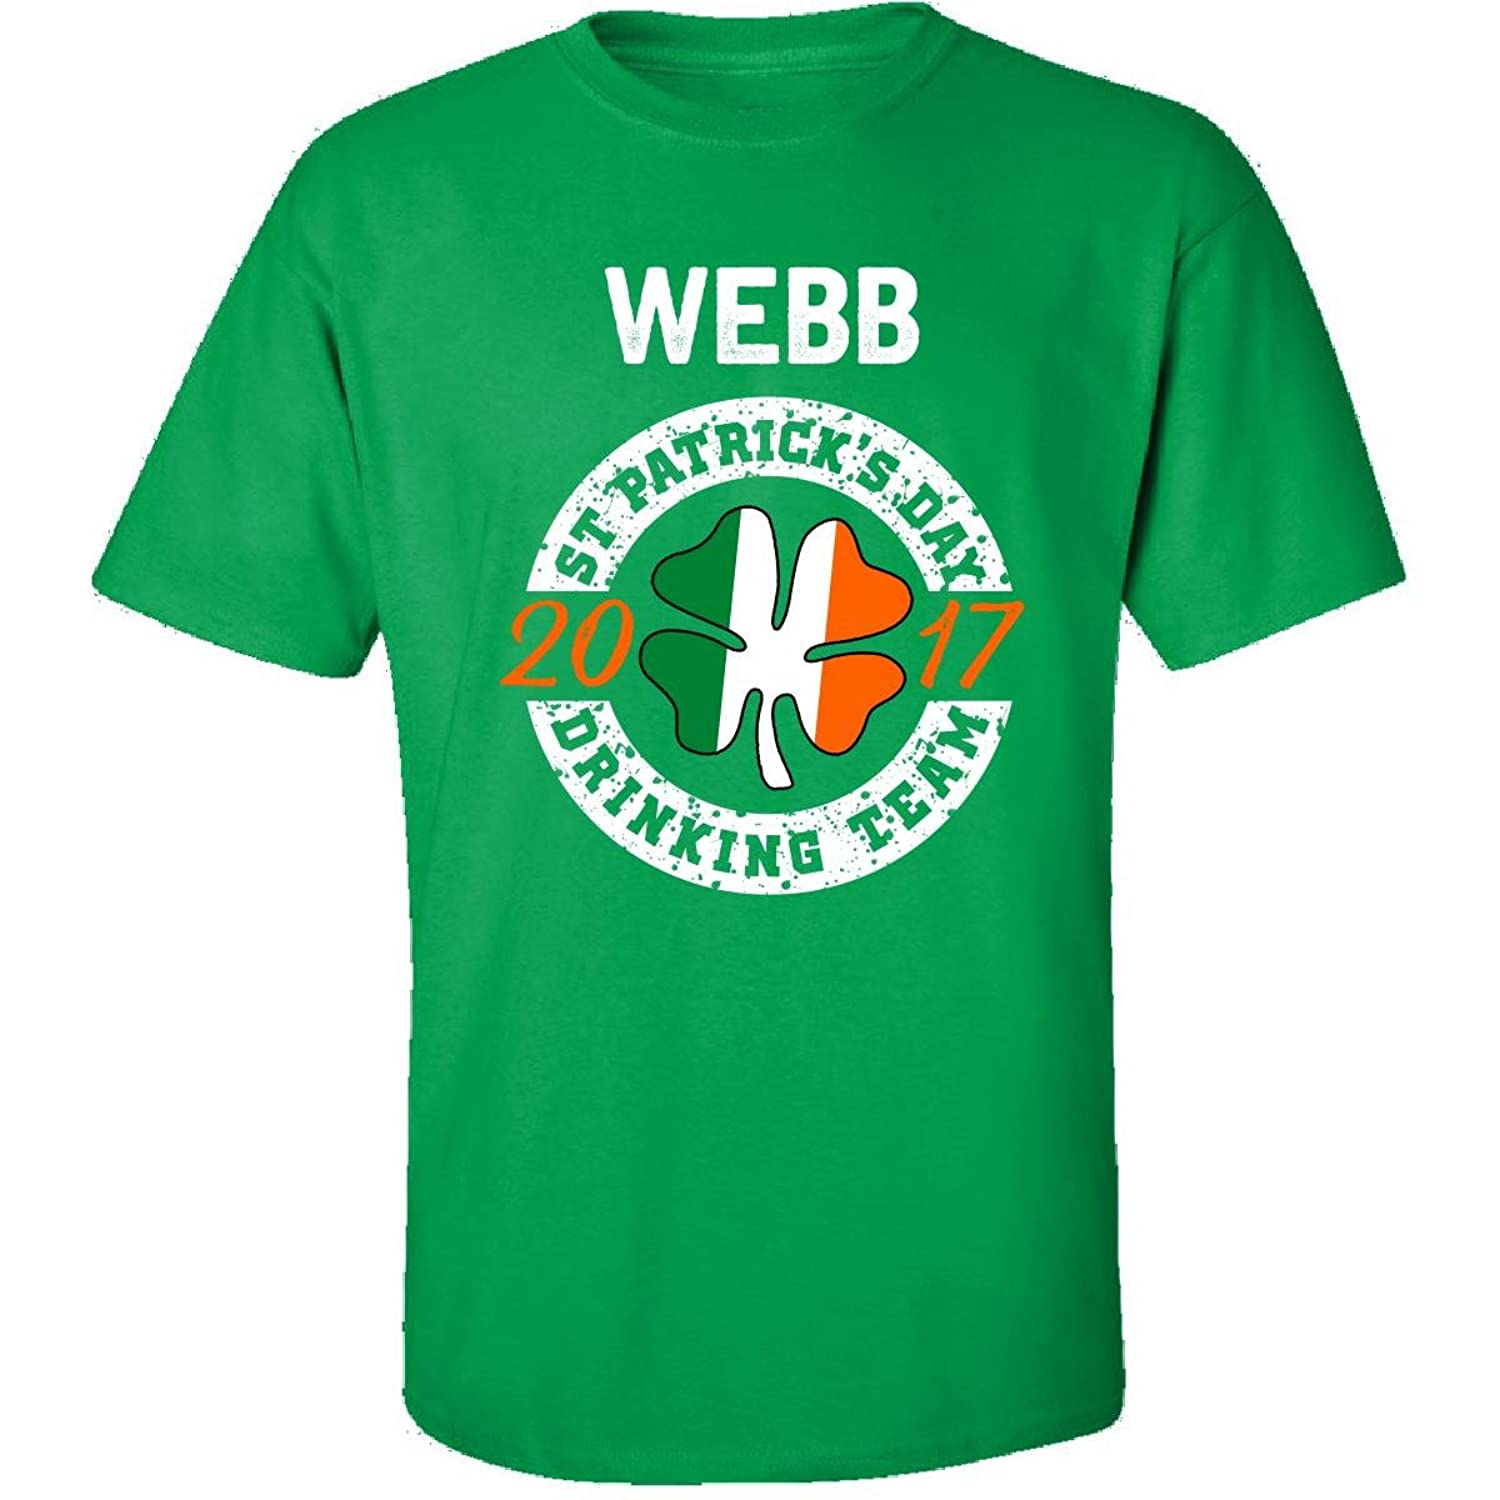 Webb St Patricks Day 2017 Drinking Team Irish - Adult Shirt